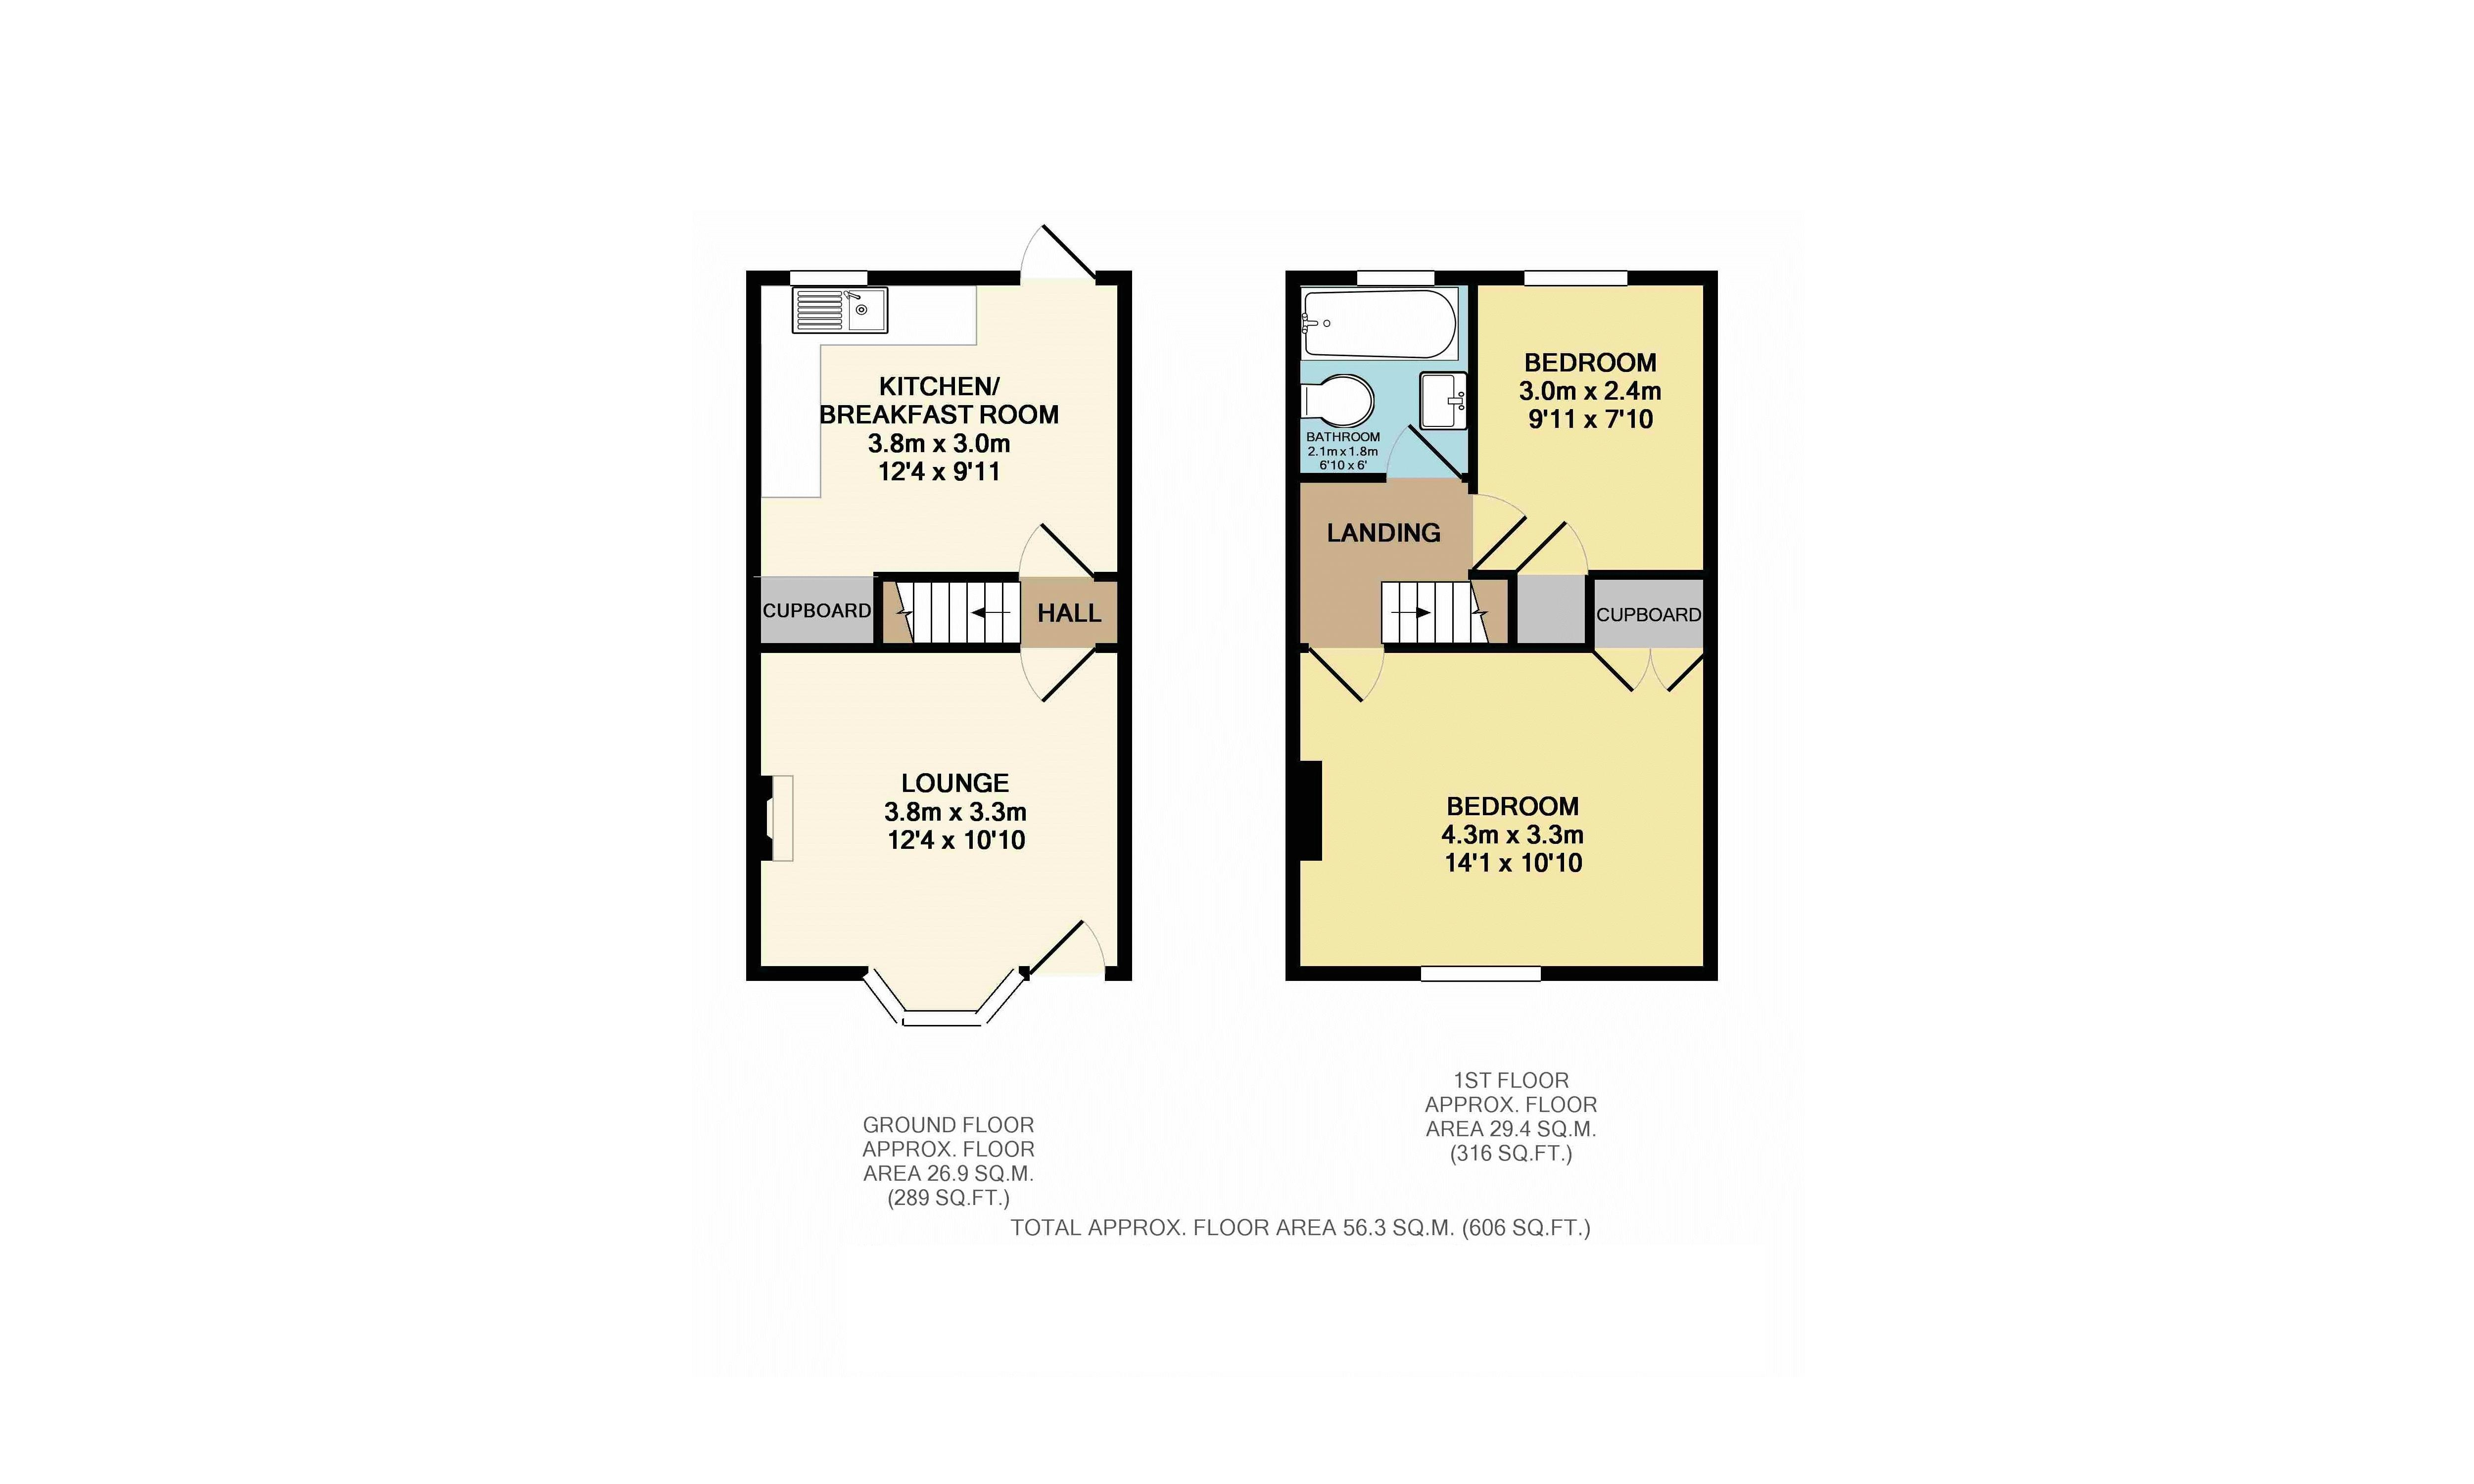 2 bedroom terraced house for sale in leighton buzzard for How much is a bathroom worth on an appraisal